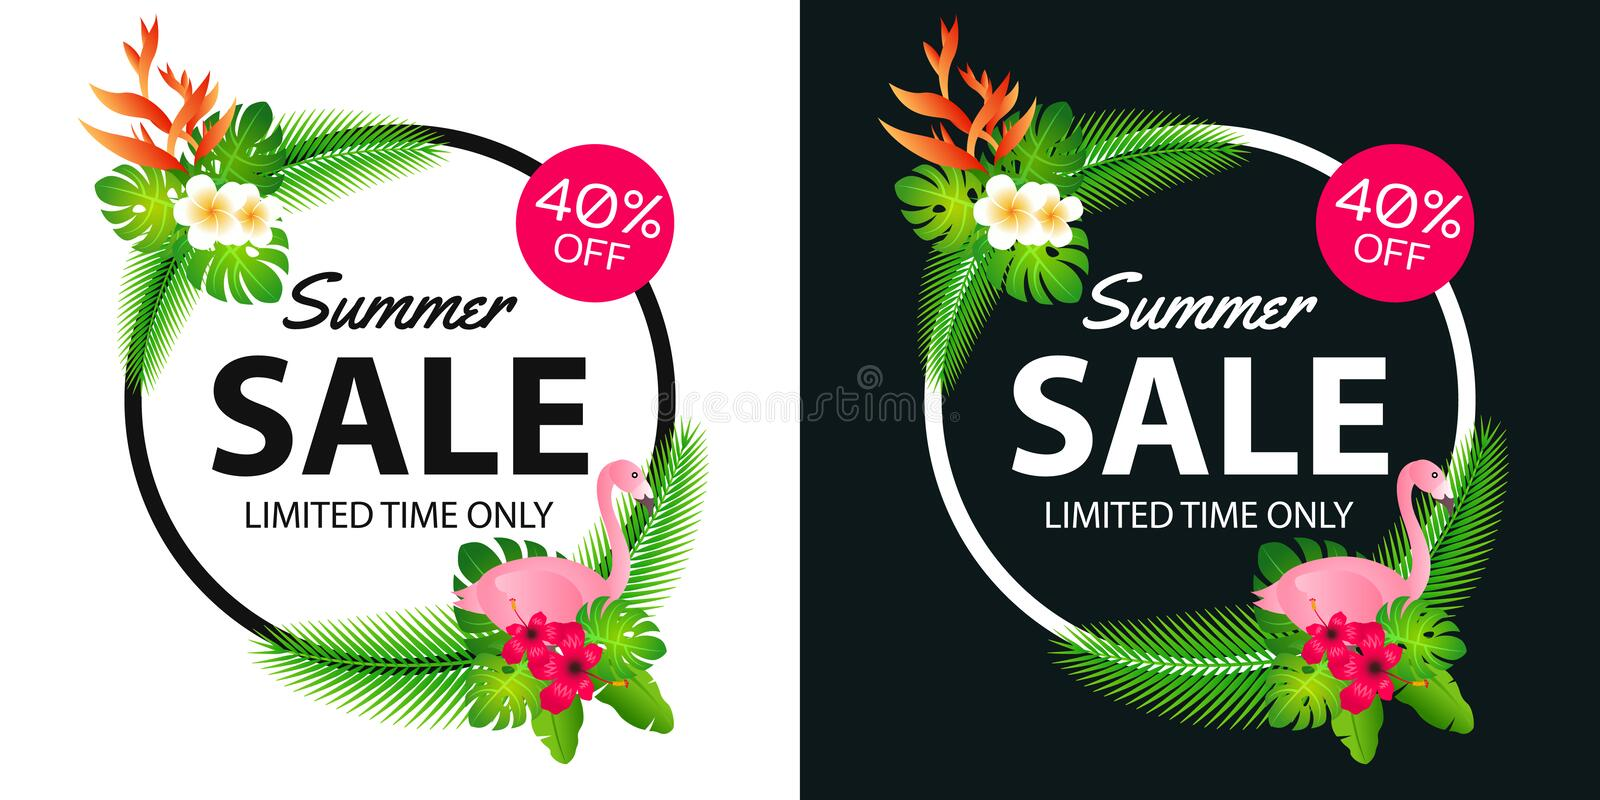 Summer sale offer banner decorative element with its symbol,modern and fashionable design. Vector illustration royalty free stock photos